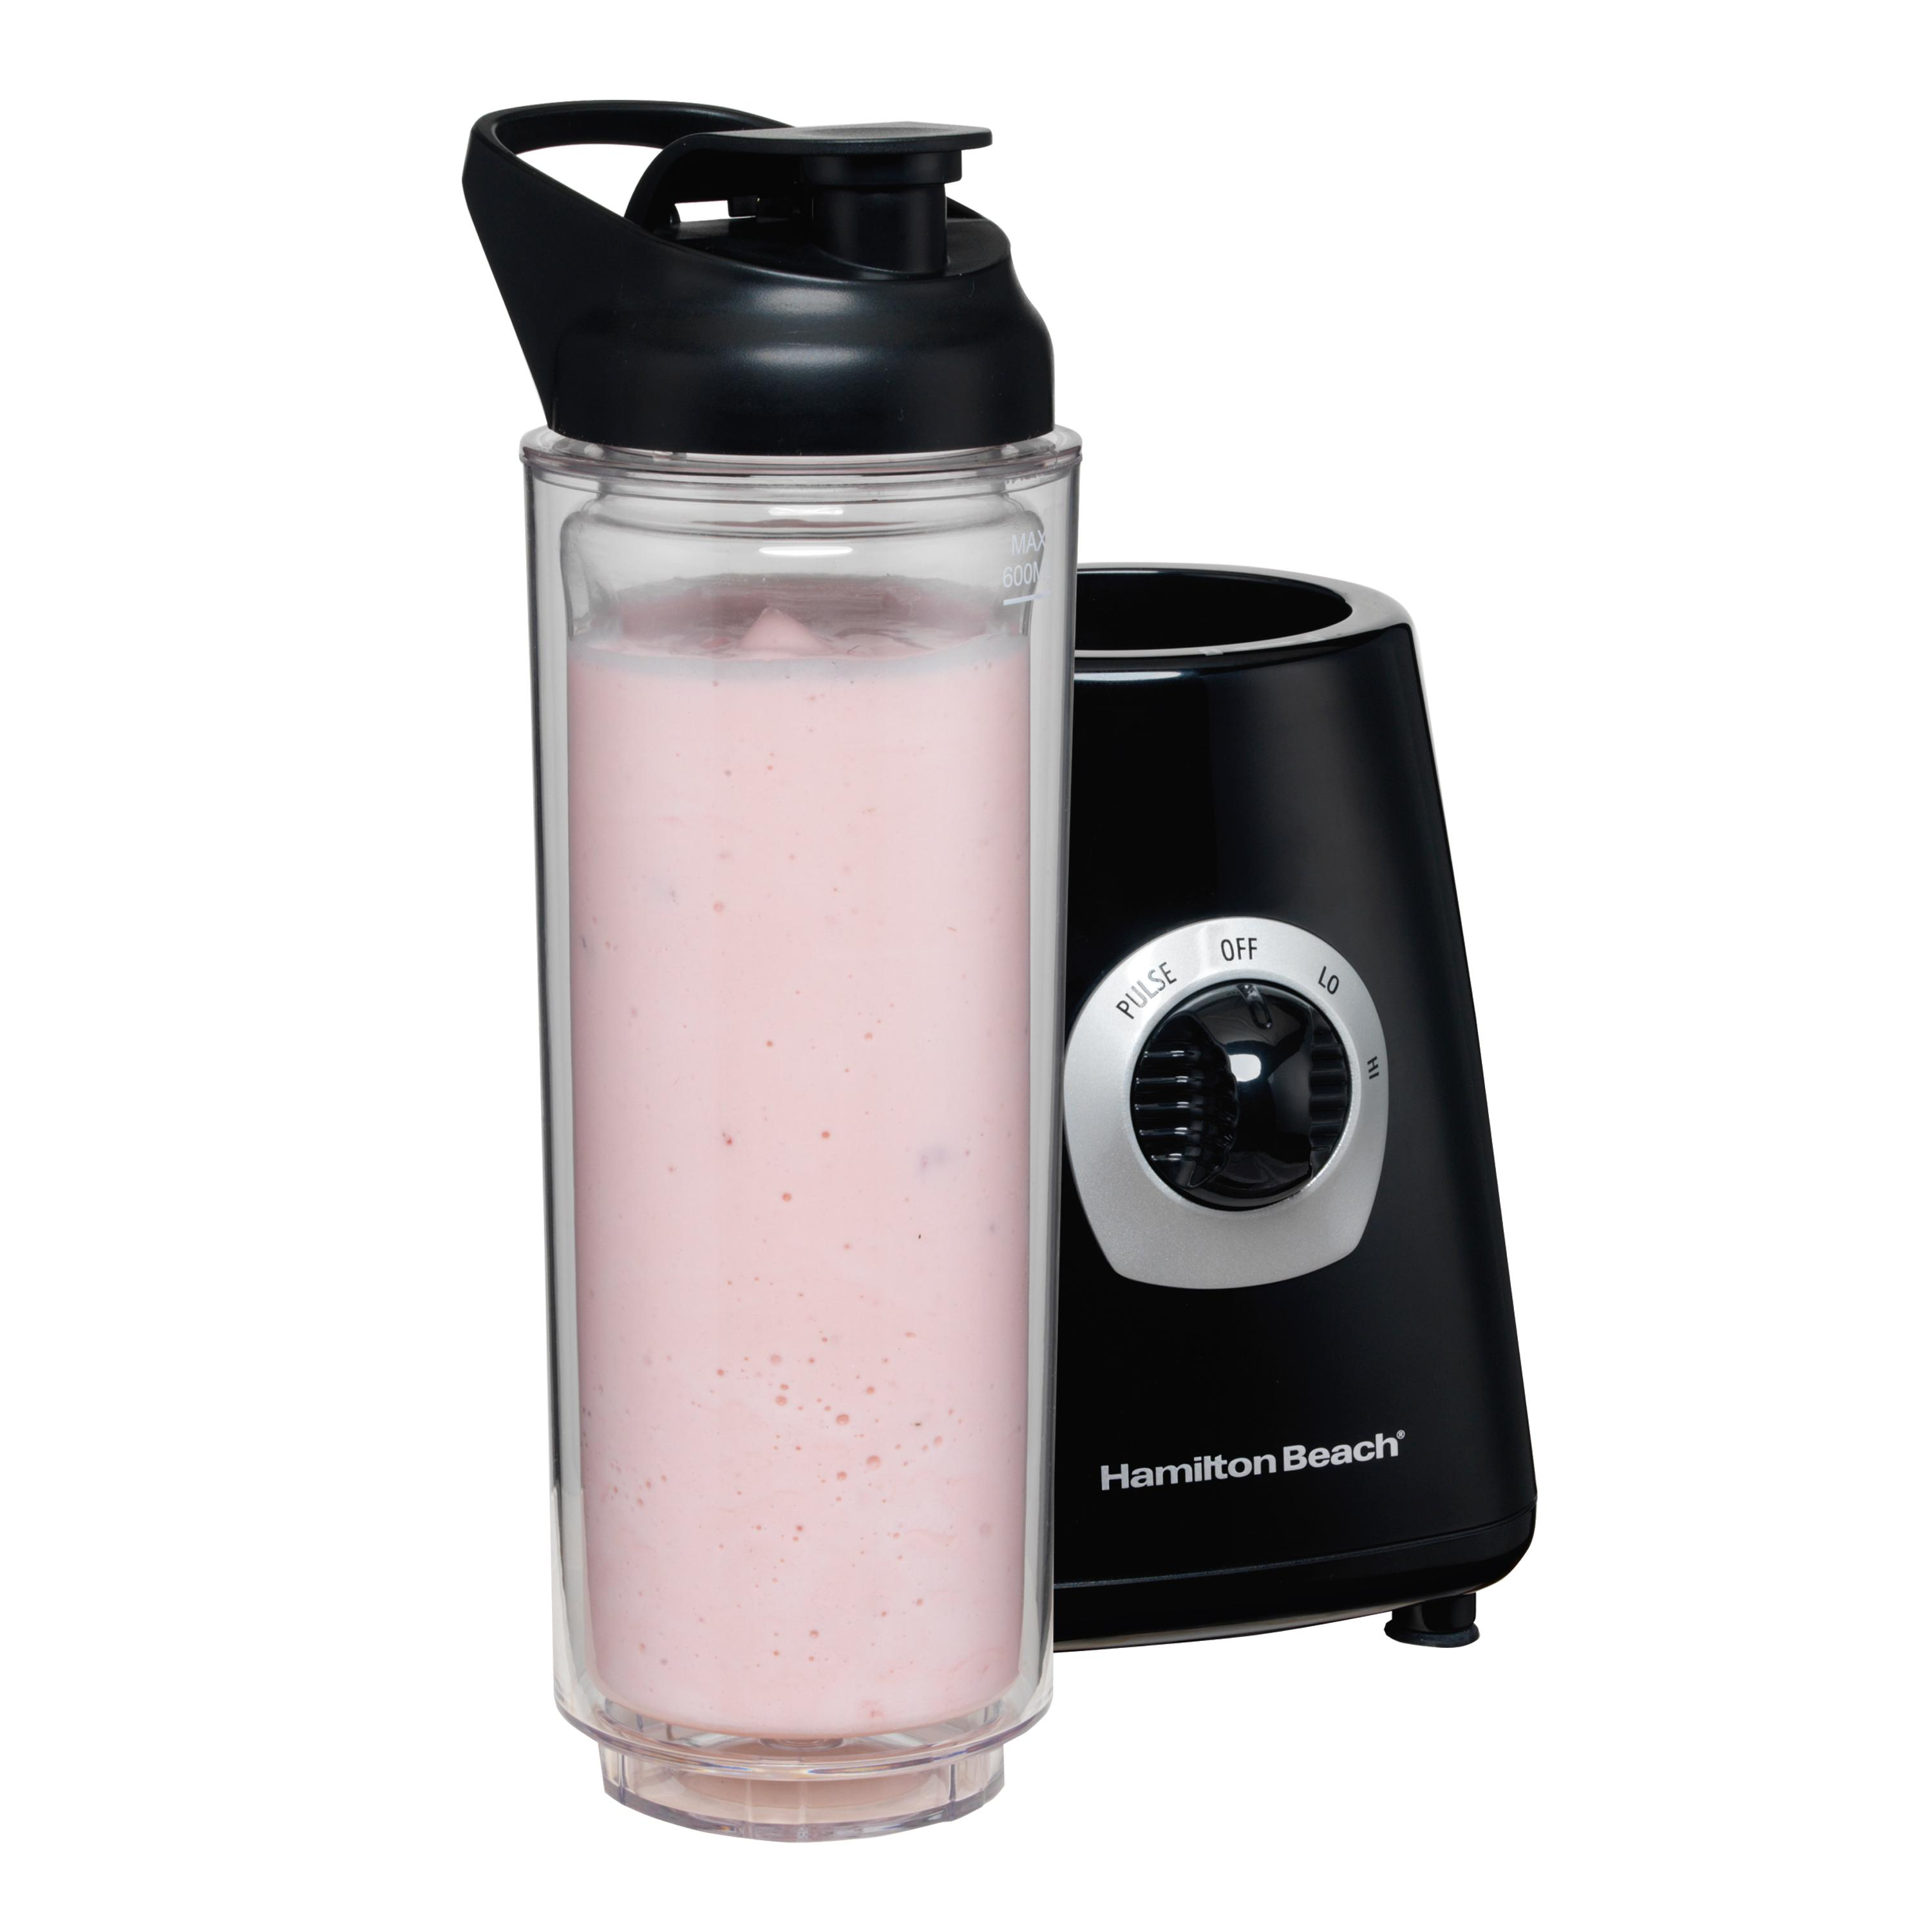 Amazon.com: Hamilton Beach Personal Blender, Portable